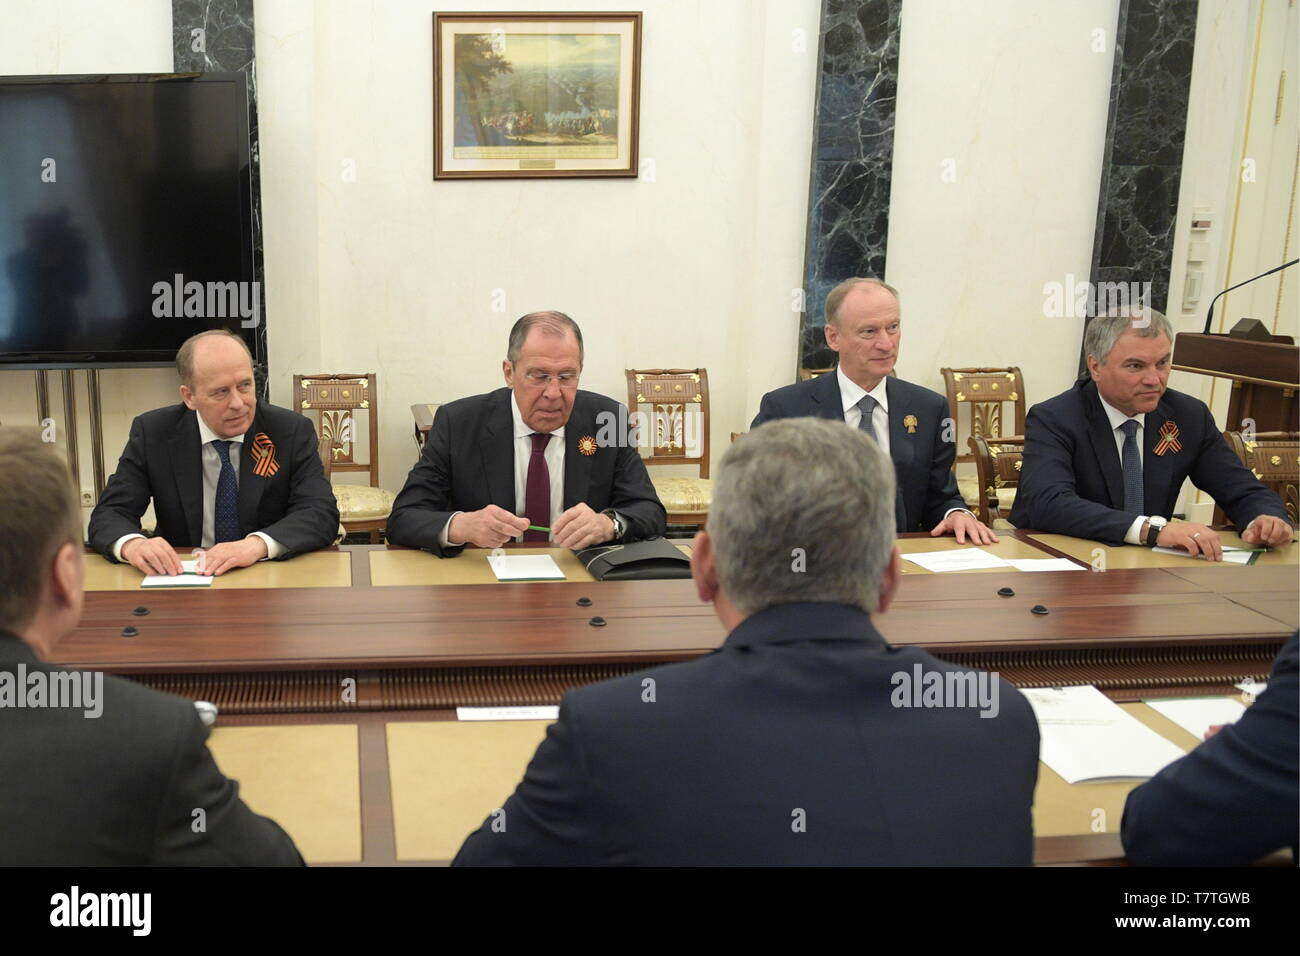 Moscow, Russia. 09th May, 2019. MOSCOW, RUSSIA - MAY 9, 2019: Alexander Bortnikov, Head of the Russian Federal Security Service, Russia's Foreign Minister Sergei Lavrov, Security Council Secretary Nikolai Patrushev and State Duma Chairman Vyacheslav Volodin (L-R) ahead of a meeting between Russia's President Vladimir Putin and permanent members of the Russian Security Council at the Moscow Kremlin. Alexei Druzhinin/Russian Presidential Press and Information Office/TASS Credit: ITAR-TASS News Agency/Alamy Live News - Stock Image